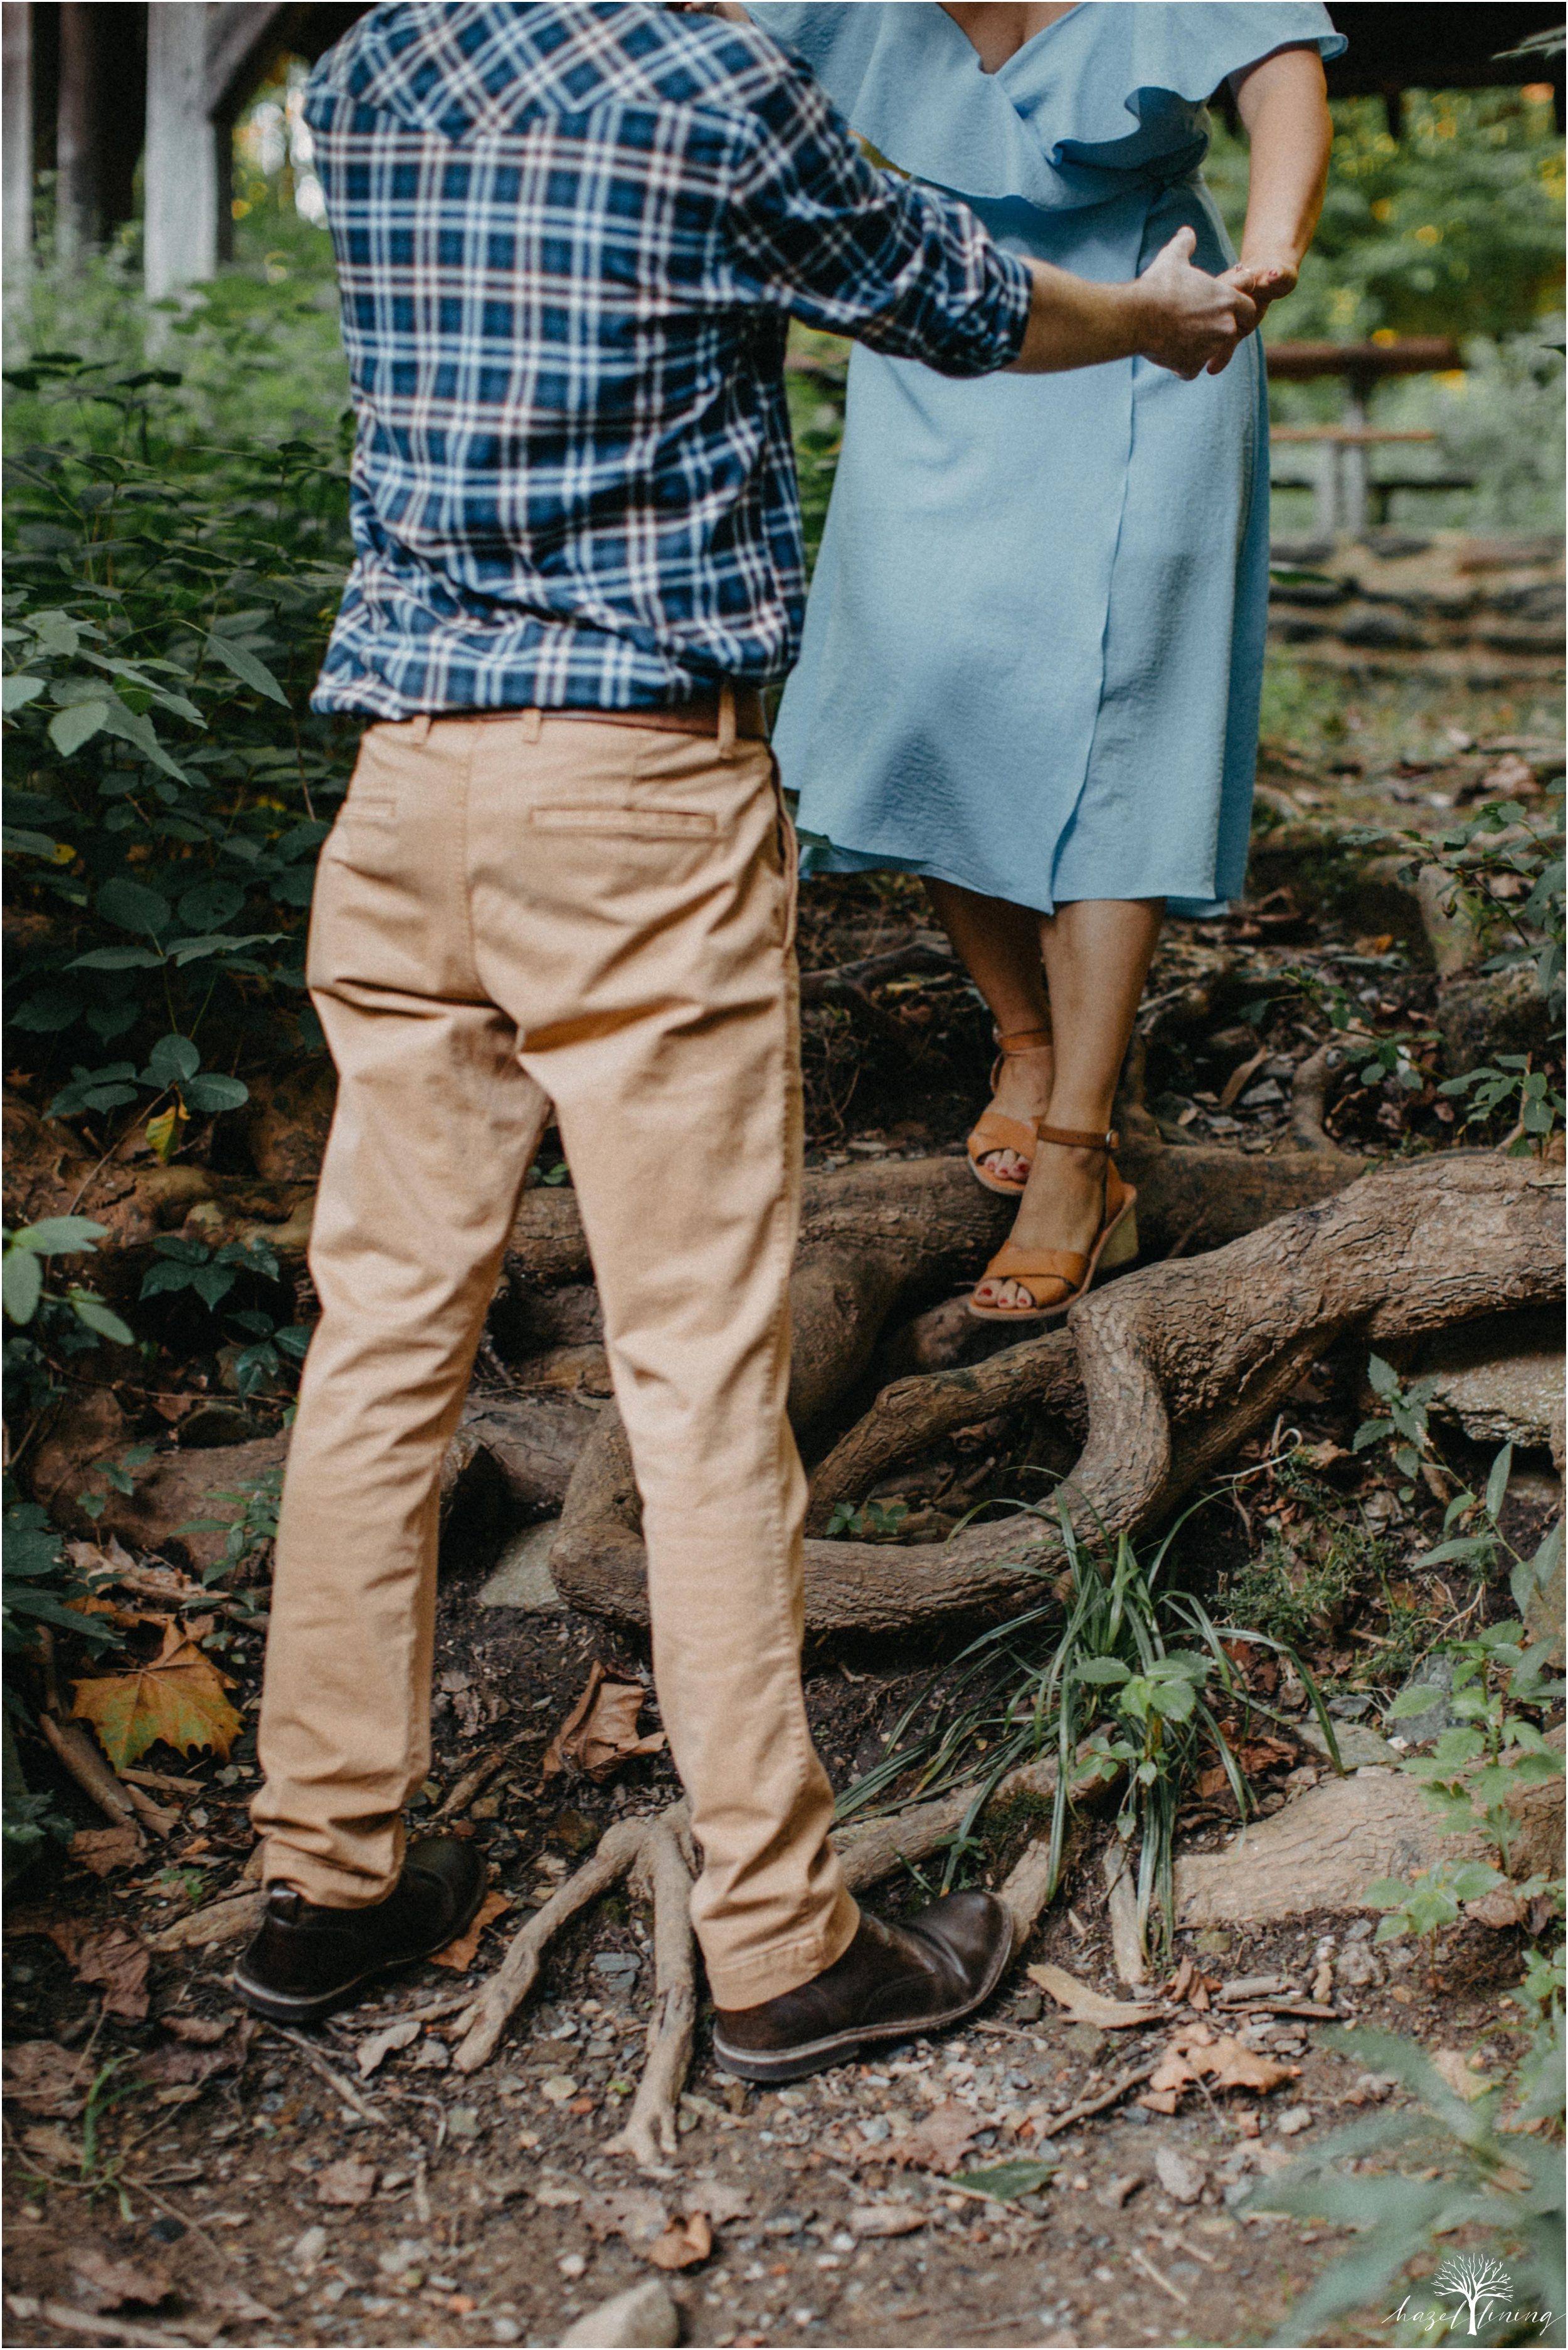 paige-kochey-chris-graham-valley-green-wissahickon-park-philadelphia-summer-engagement-session-hazel-lining-photography-destination-elopement-wedding-engagement-photography_0018.jpg